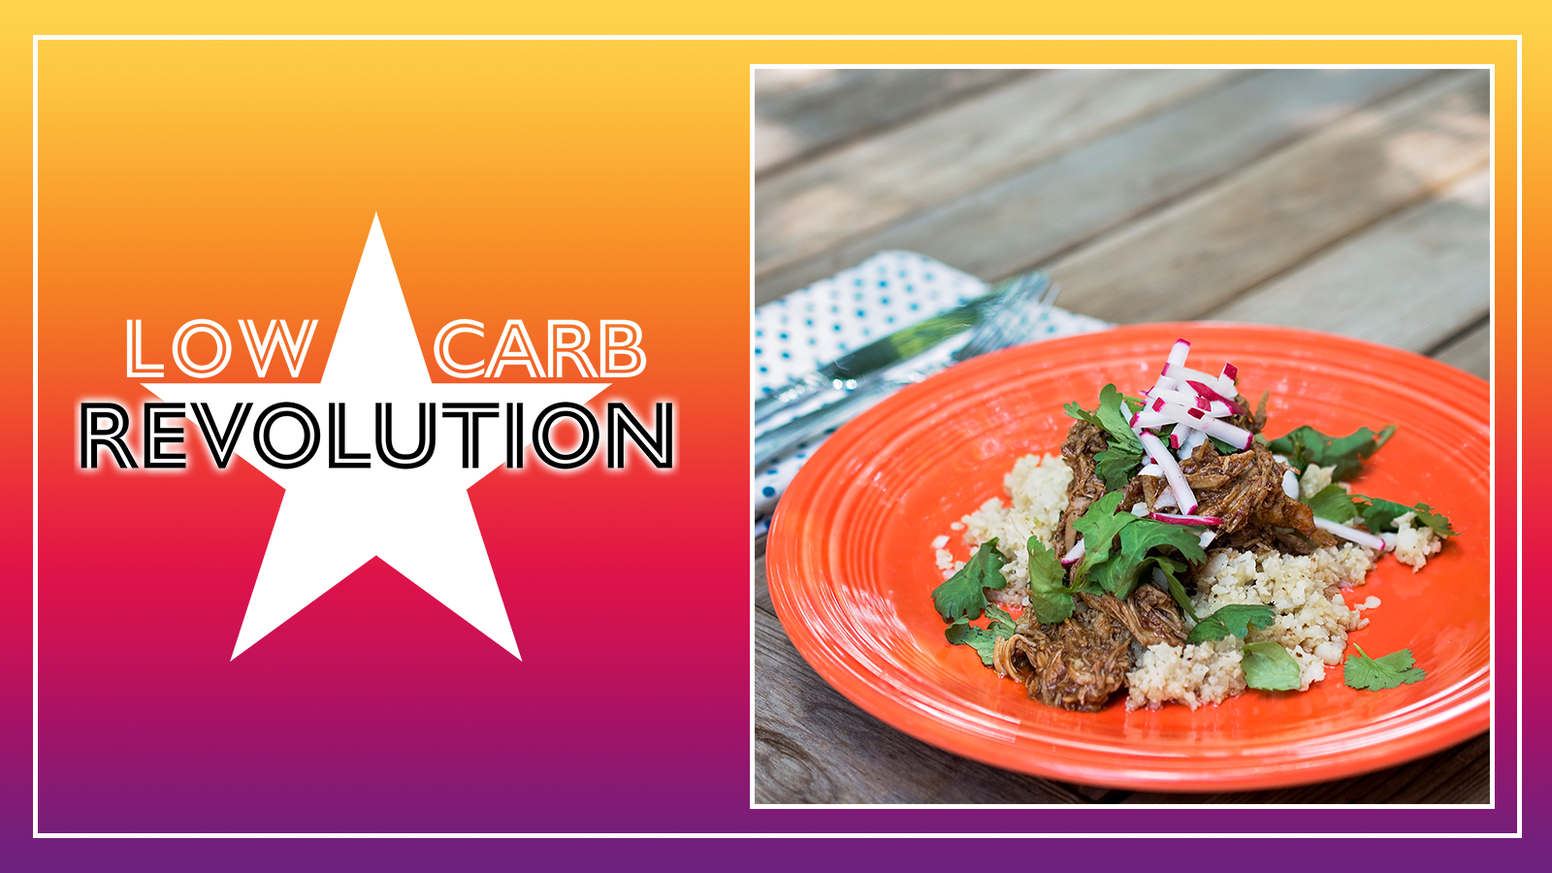 Creating radically delicious, frozen low carb meals and sweet treats for foodies across the United States.